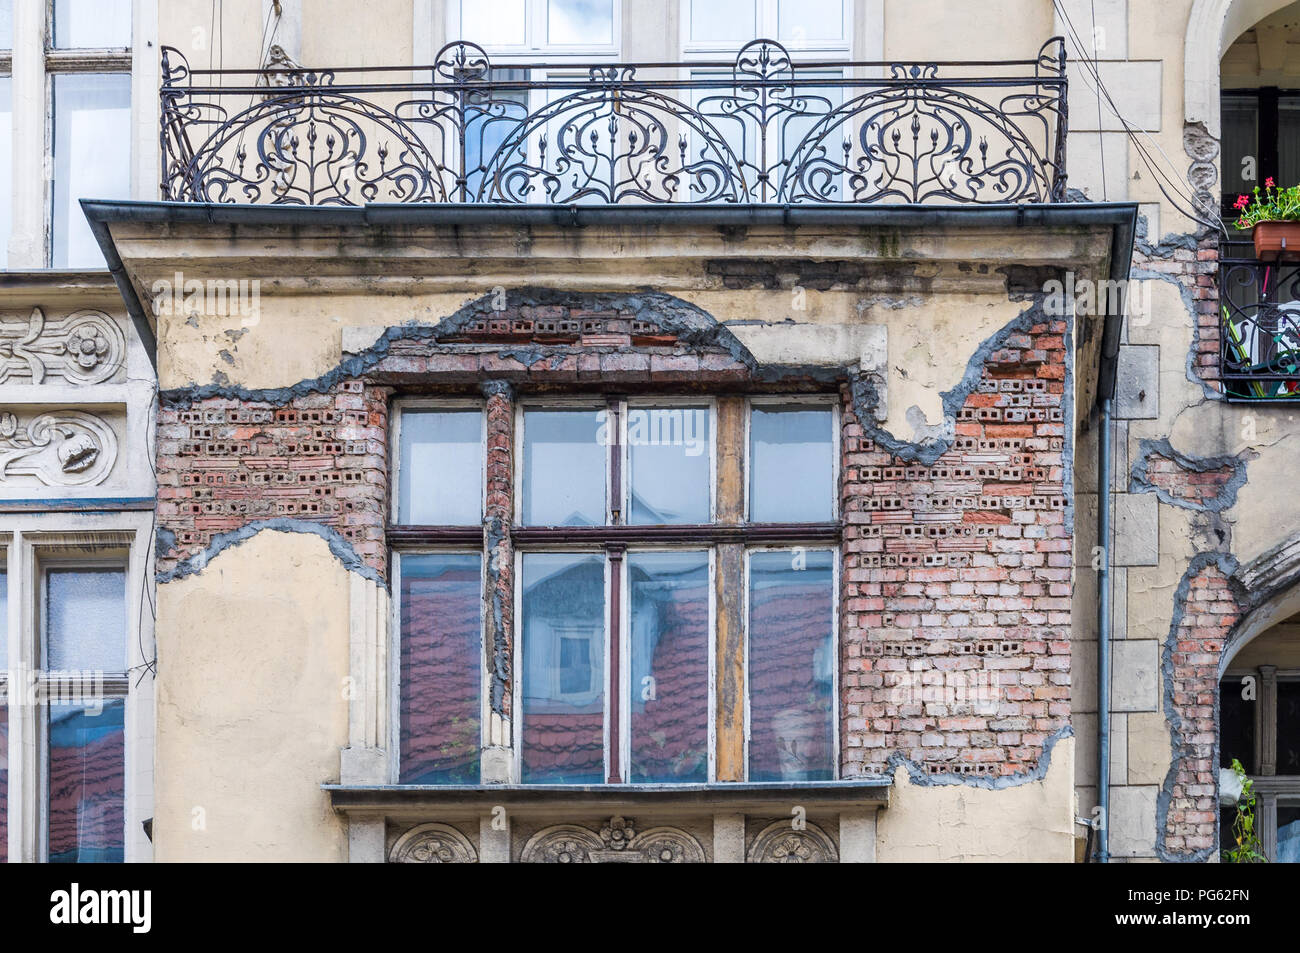 A dilapidated building with a balcony and missing plaster showing exposed brick work in Poznań (Poznan), Poland - Stock Image